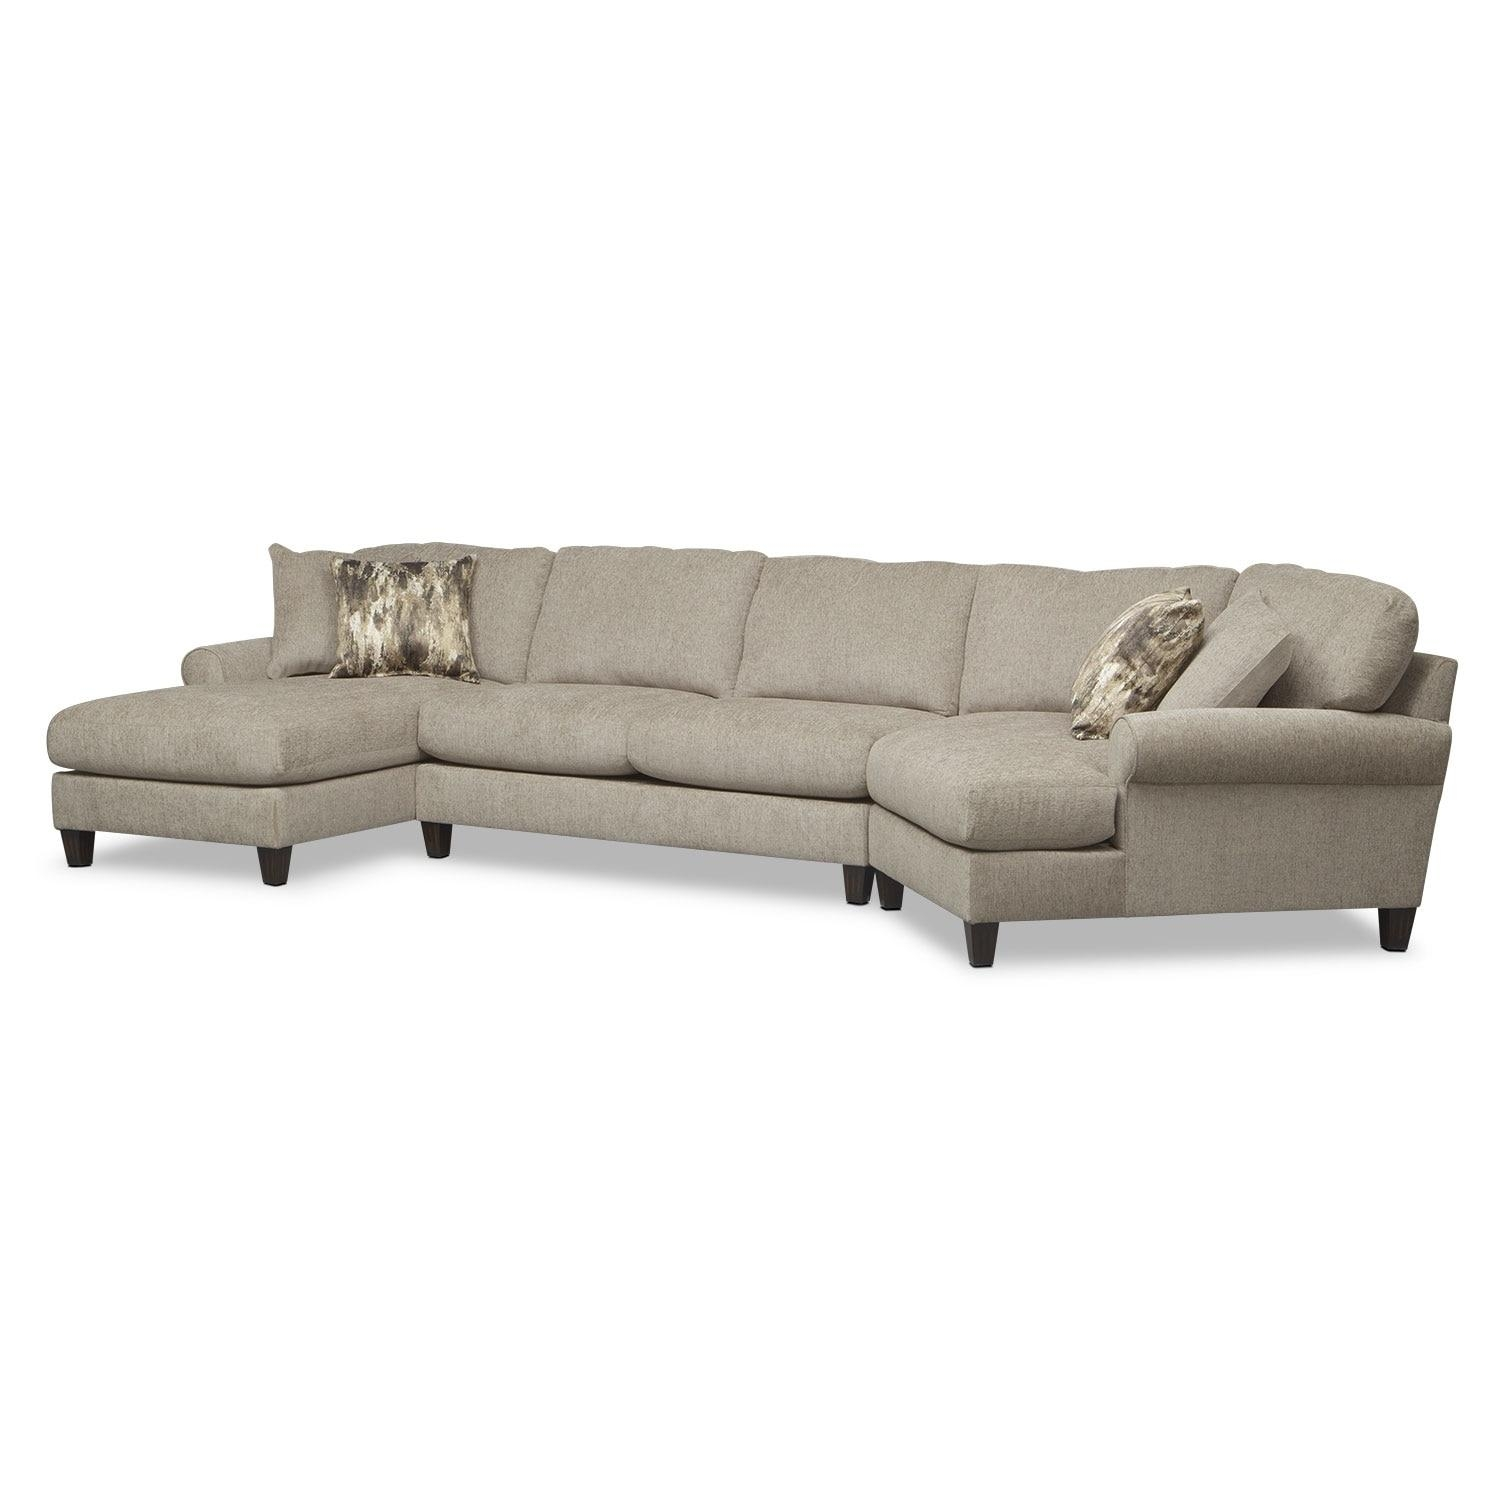 Karma 3 Piece Sectional With Right Facing Cuddler And Left Facing Pertaining To Sectional Sofa With Cuddler Chaise (View 15 of 20)